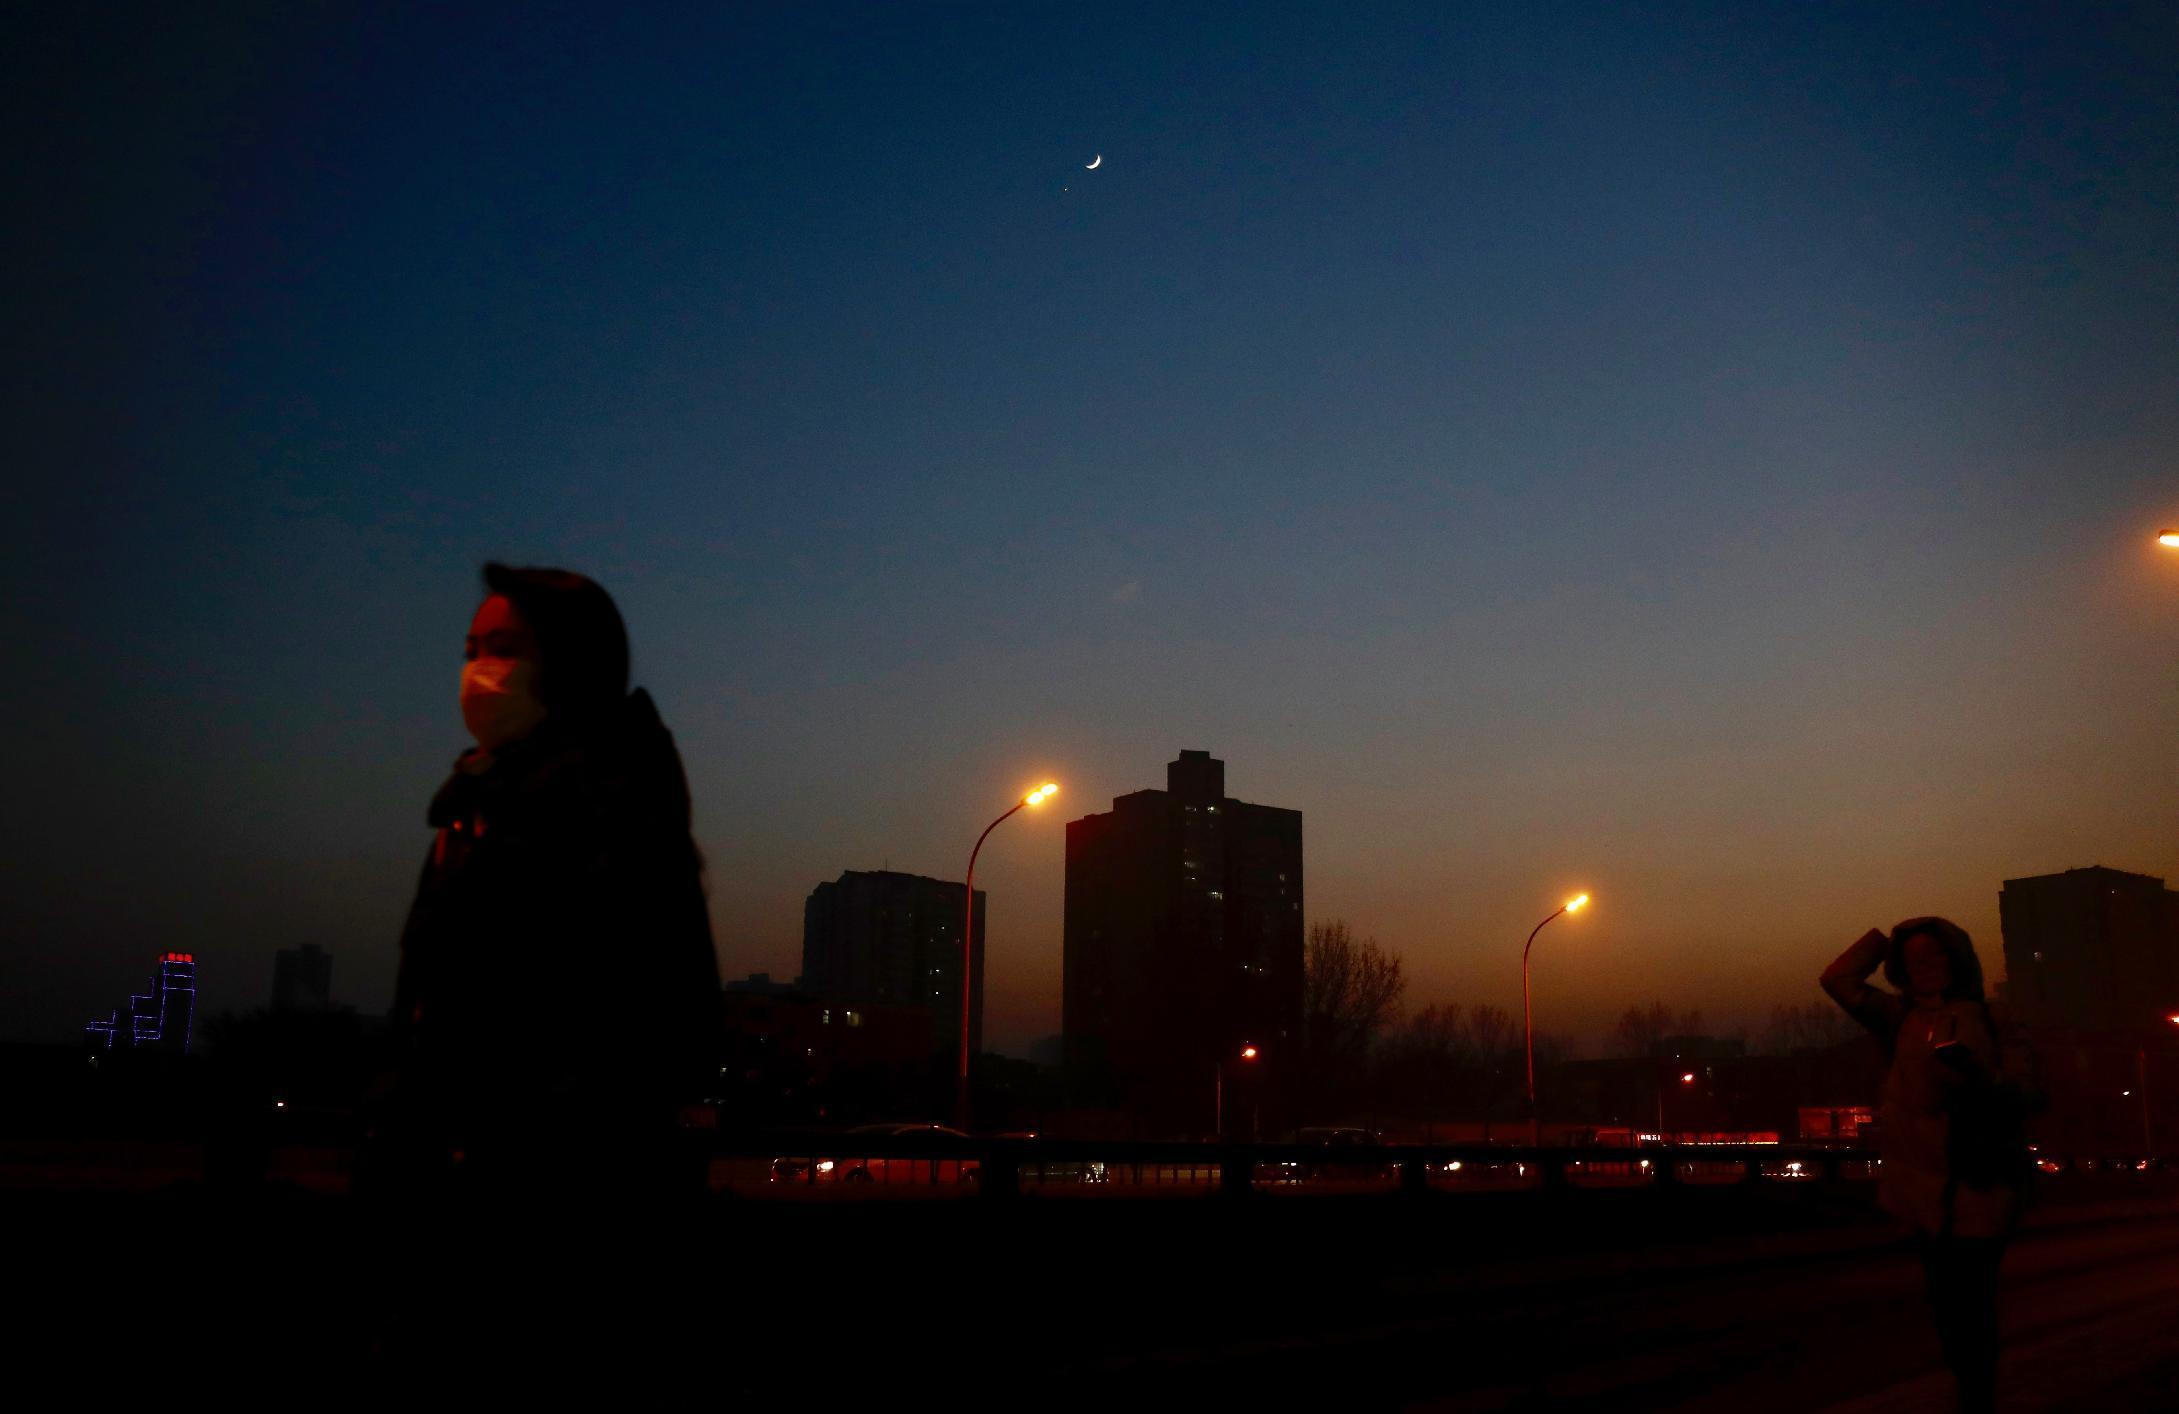 A star is twinkling above a pedestrian wearing a mask silhouetted against the city skyline shrouded in heavy smog in Beijing Monday, Jan. 2, 2017. Beijing and other cities across northern and central China were shrouded in thick smog Monday, Jan. 2, 2017, prompting authorities to delay dozens of flights and close highways. (AP Photo/Andy Wong)